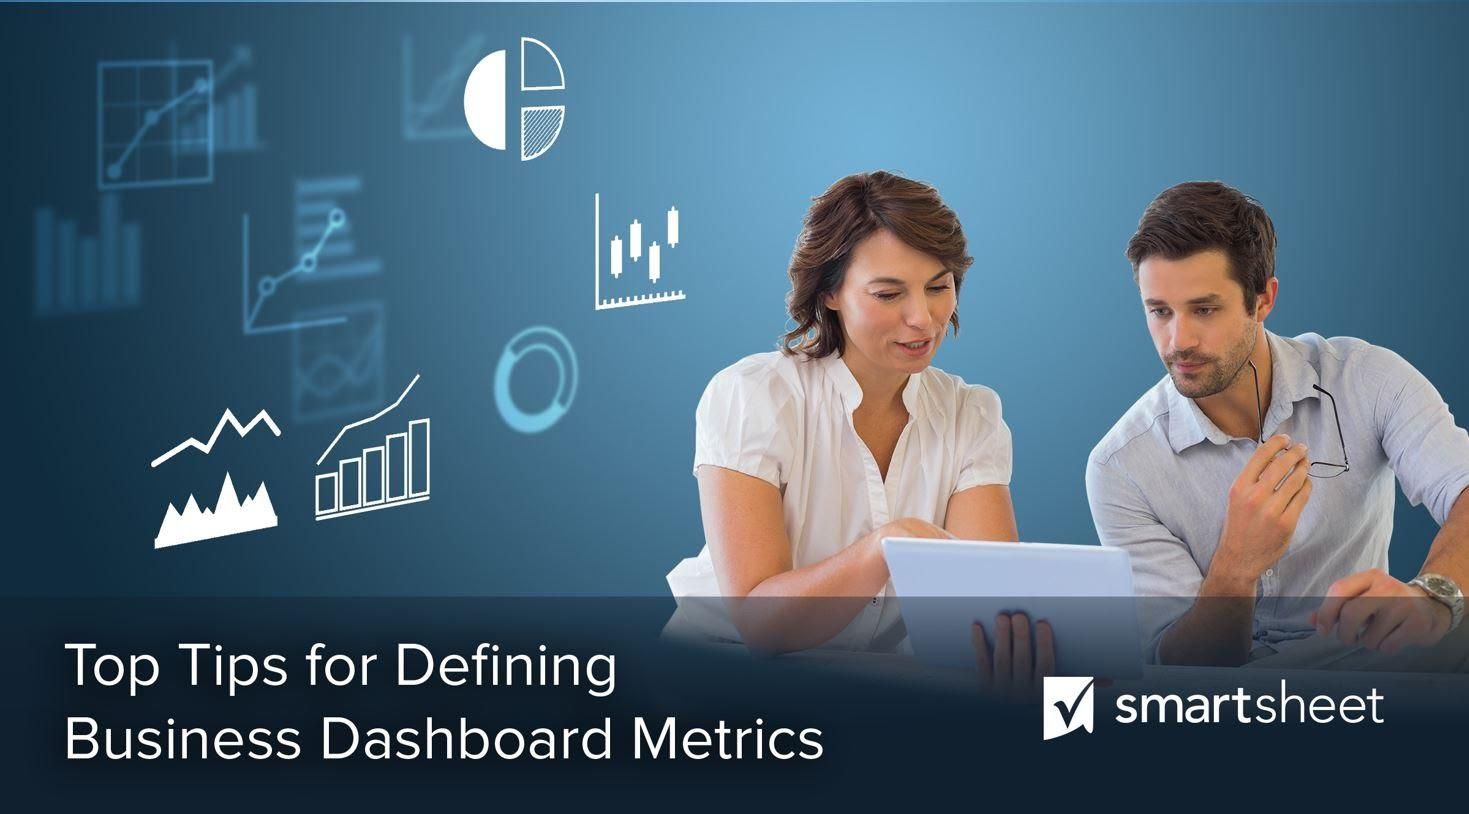 Top Tips for Defining Business Dashboard Metrics